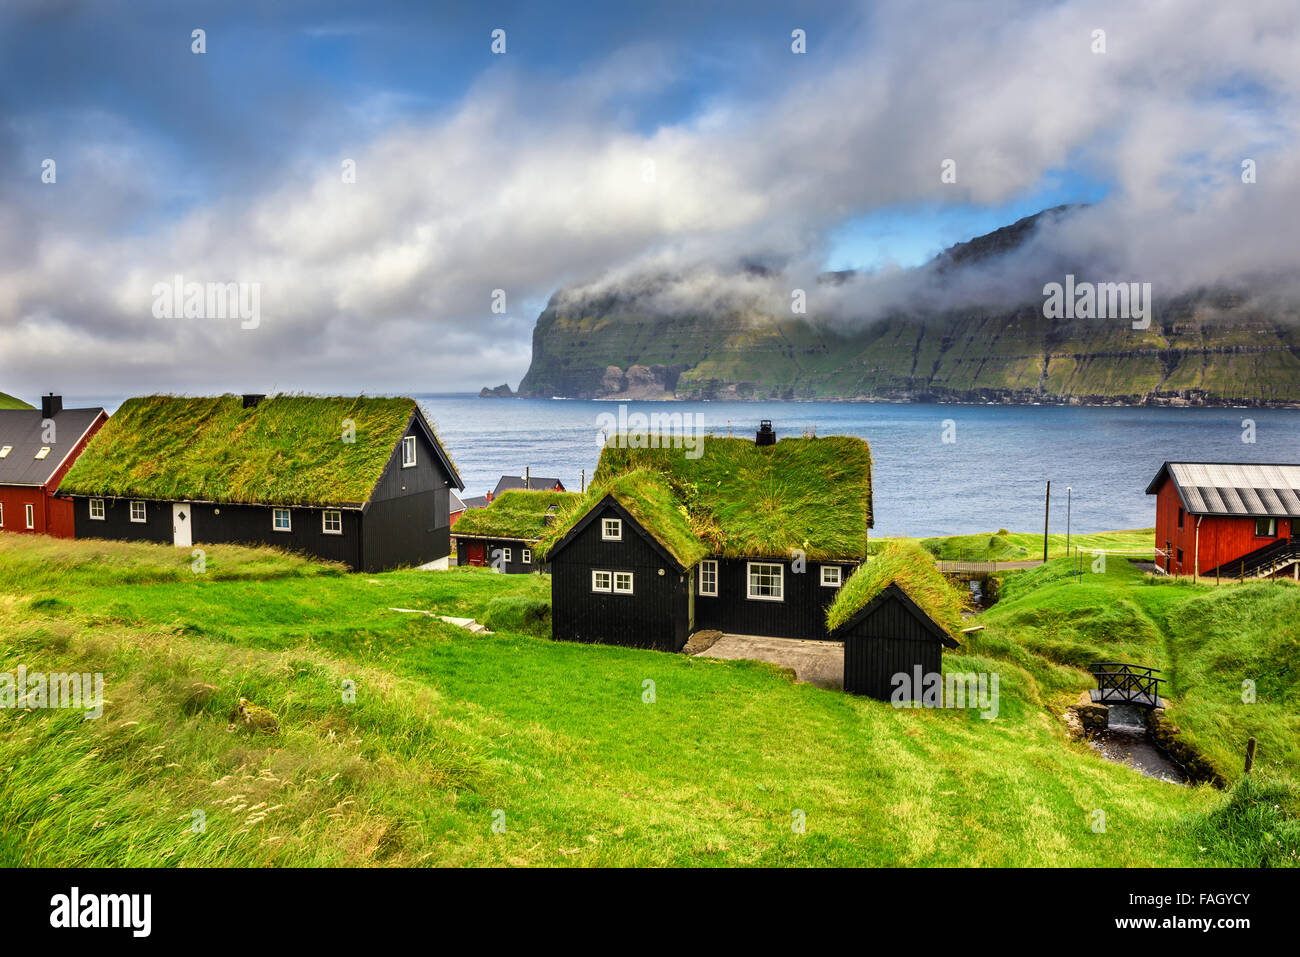 Village of Mikladalur located on the island of Kalsoy, Faroe Islands, Denmark - Stock Image